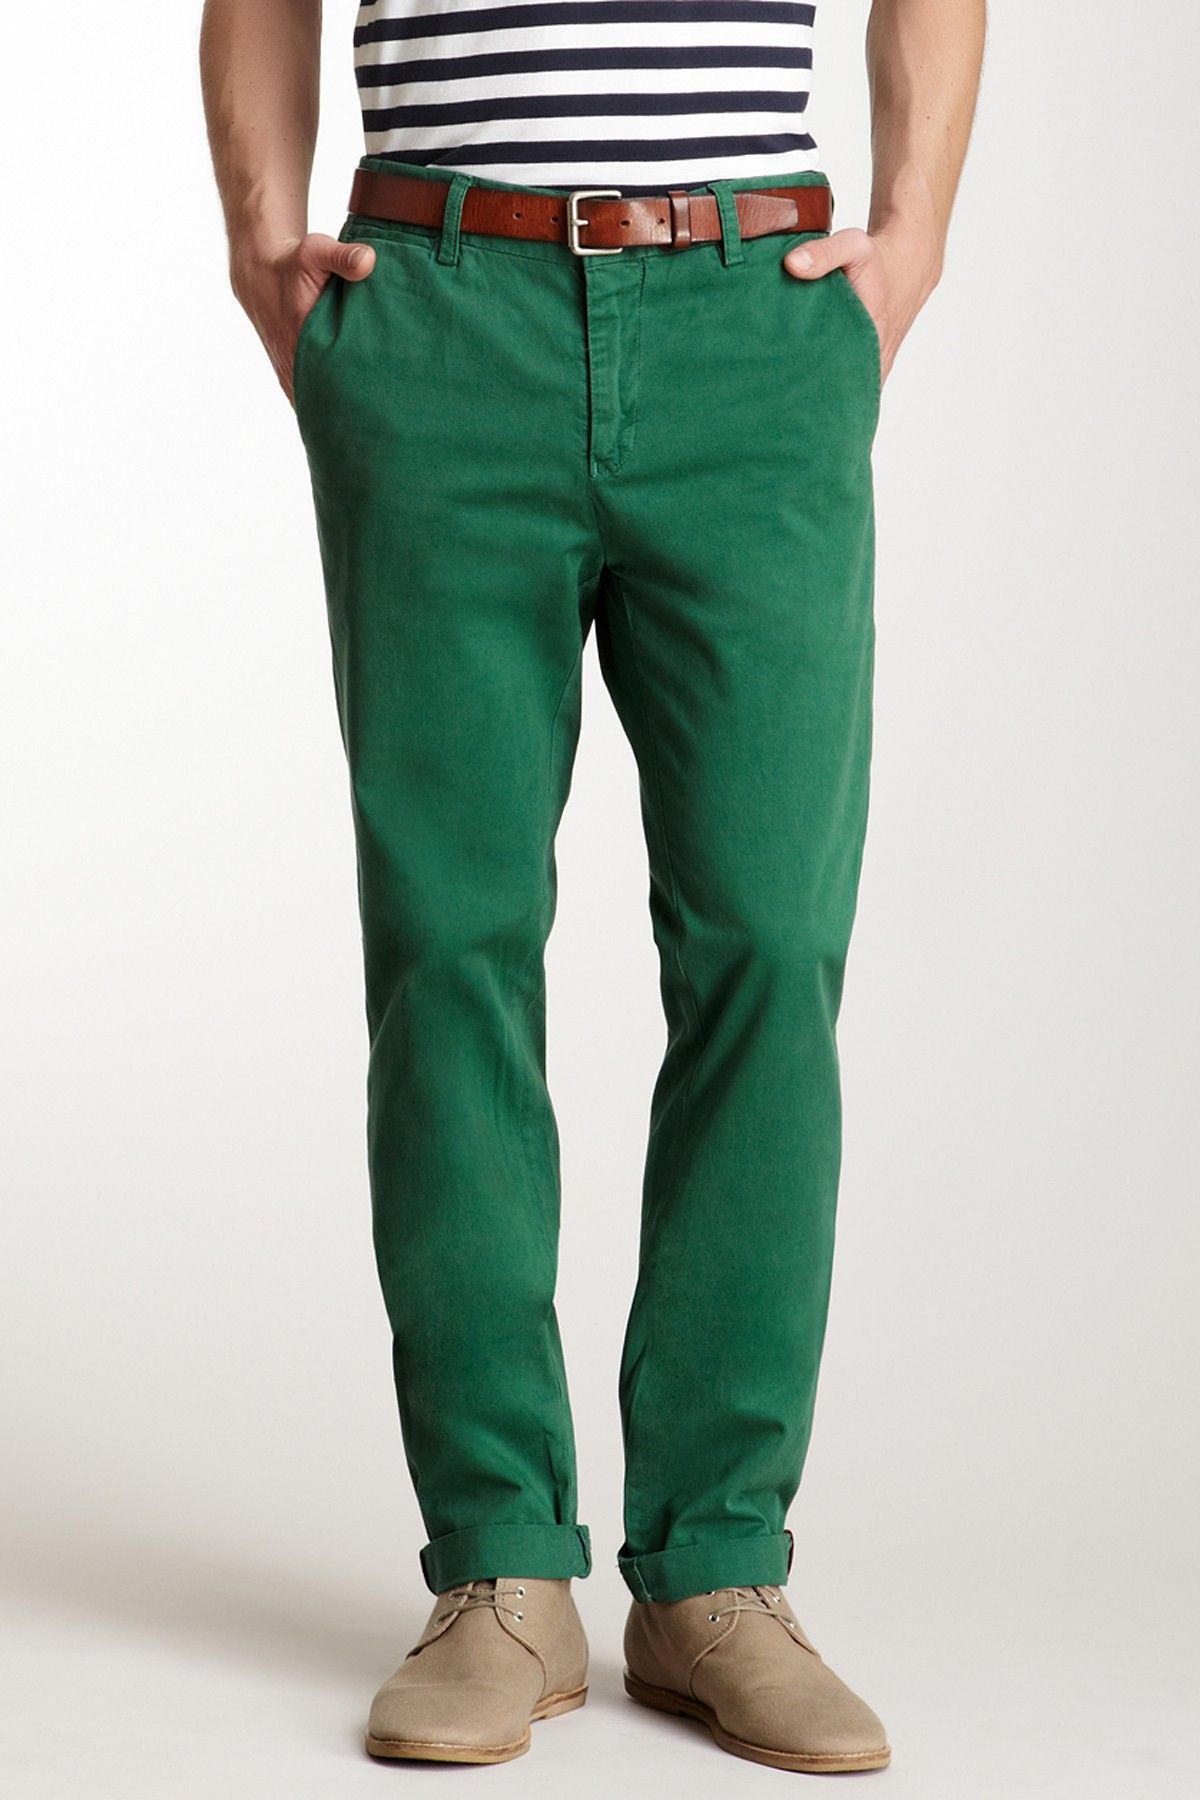 Green Chino Pants | Colored trousers | Pinterest | Products, Pants ...